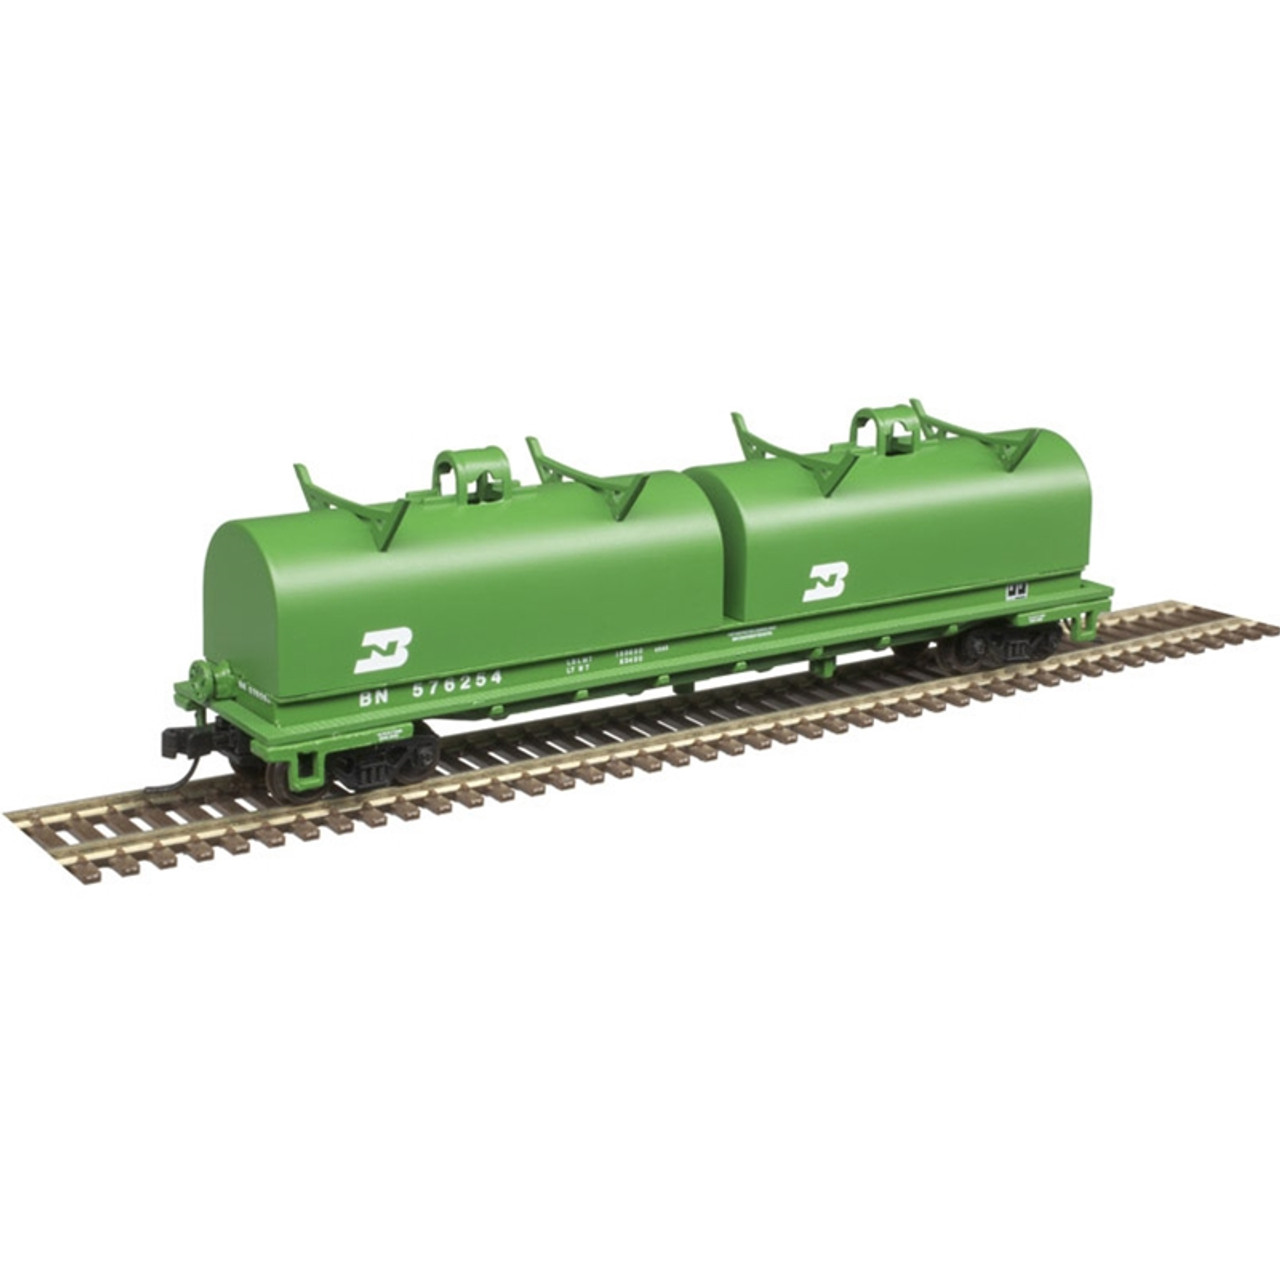 ATLAS 50004638 Cushion Coil Car - BN Burlington Northern #576240 (SCALE=N) Part # 150-50004638